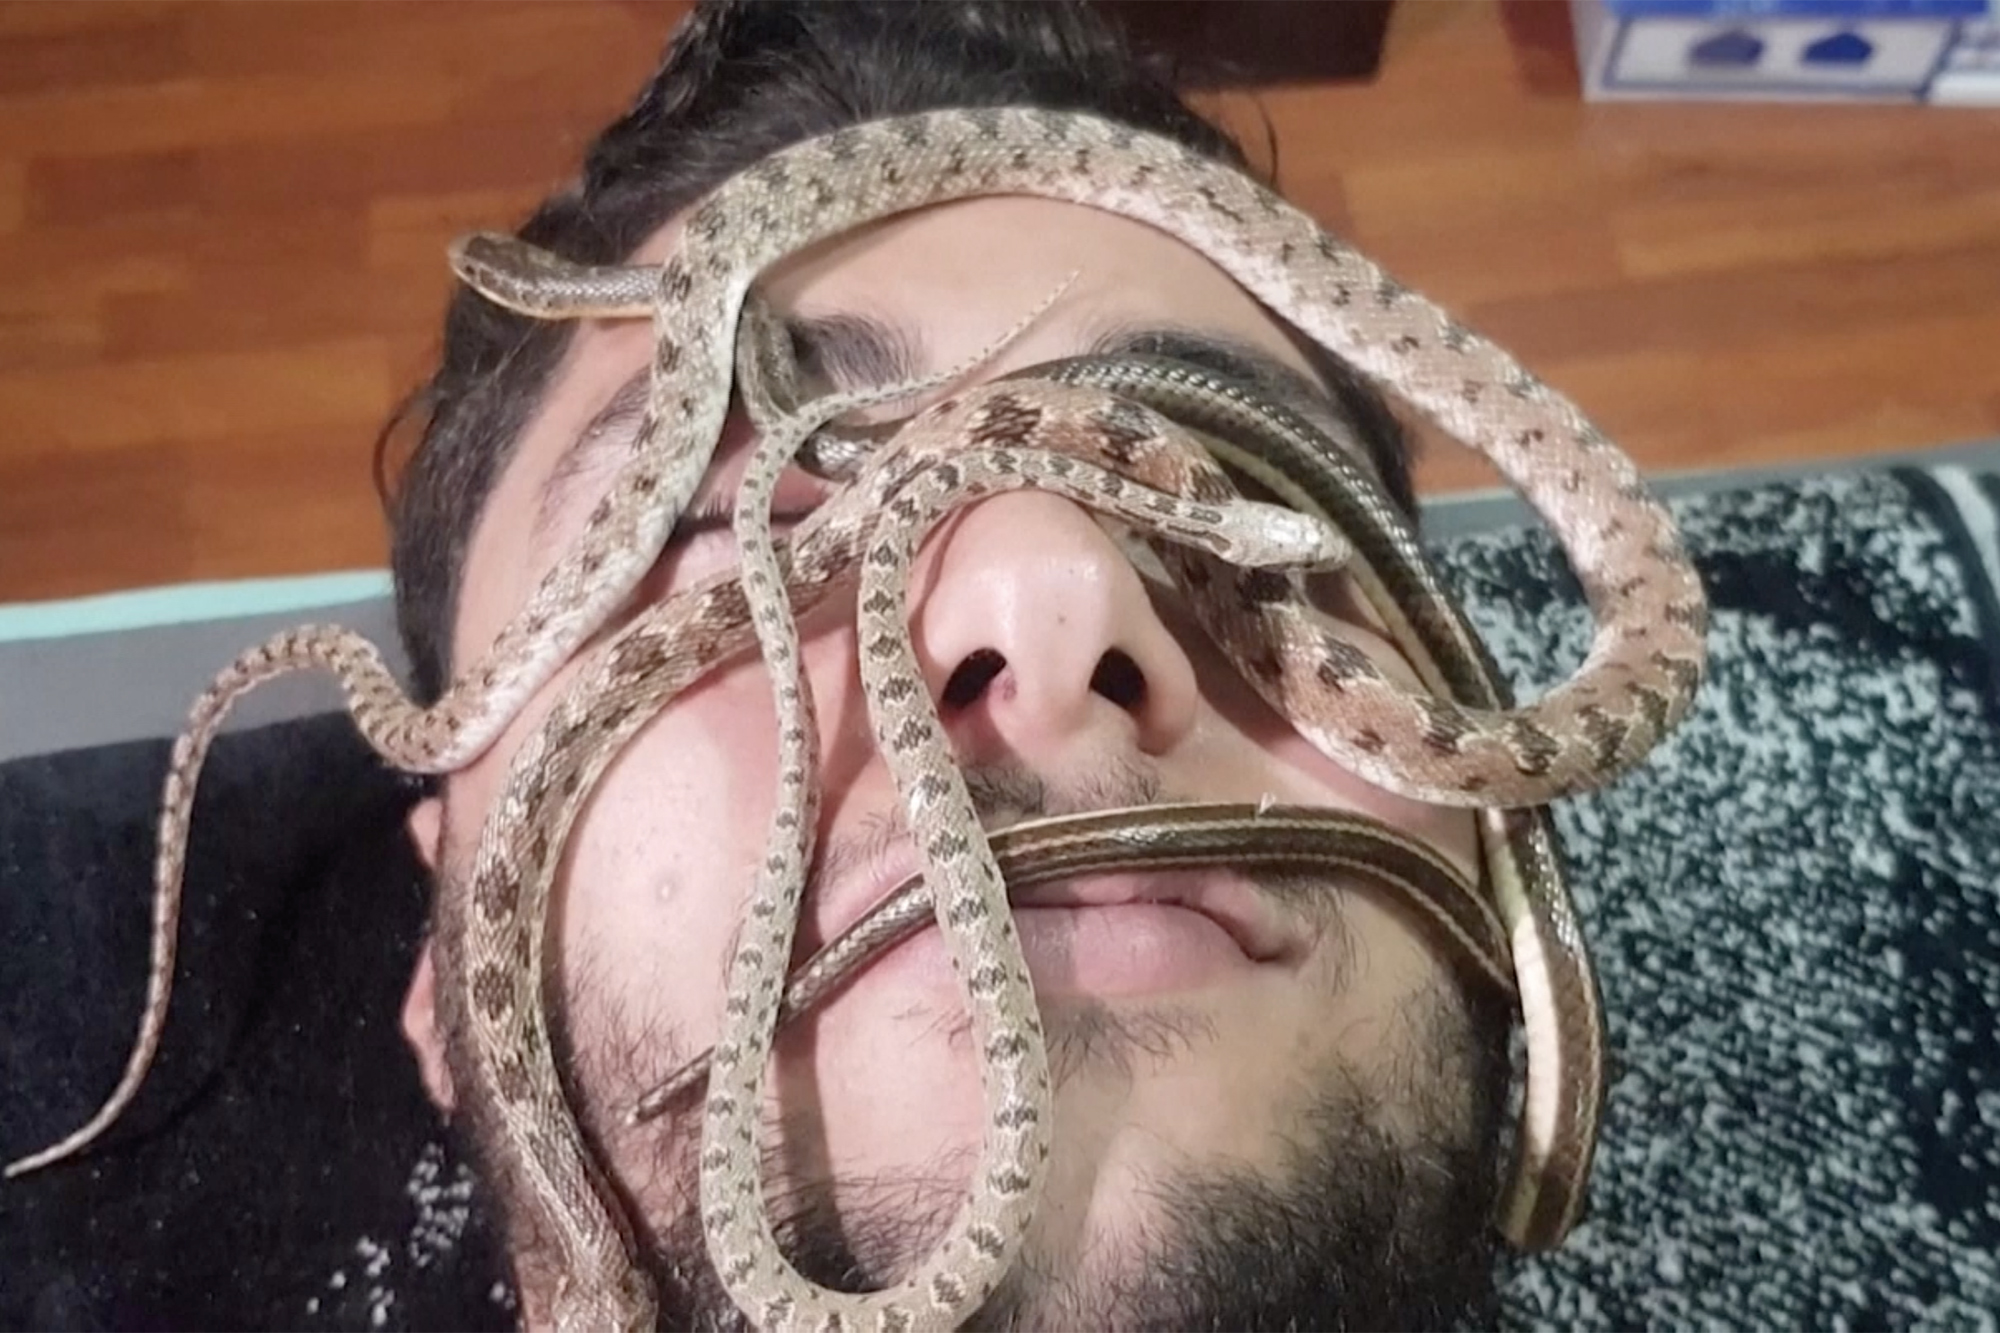 Snake massage trend is not for the faint-hearted